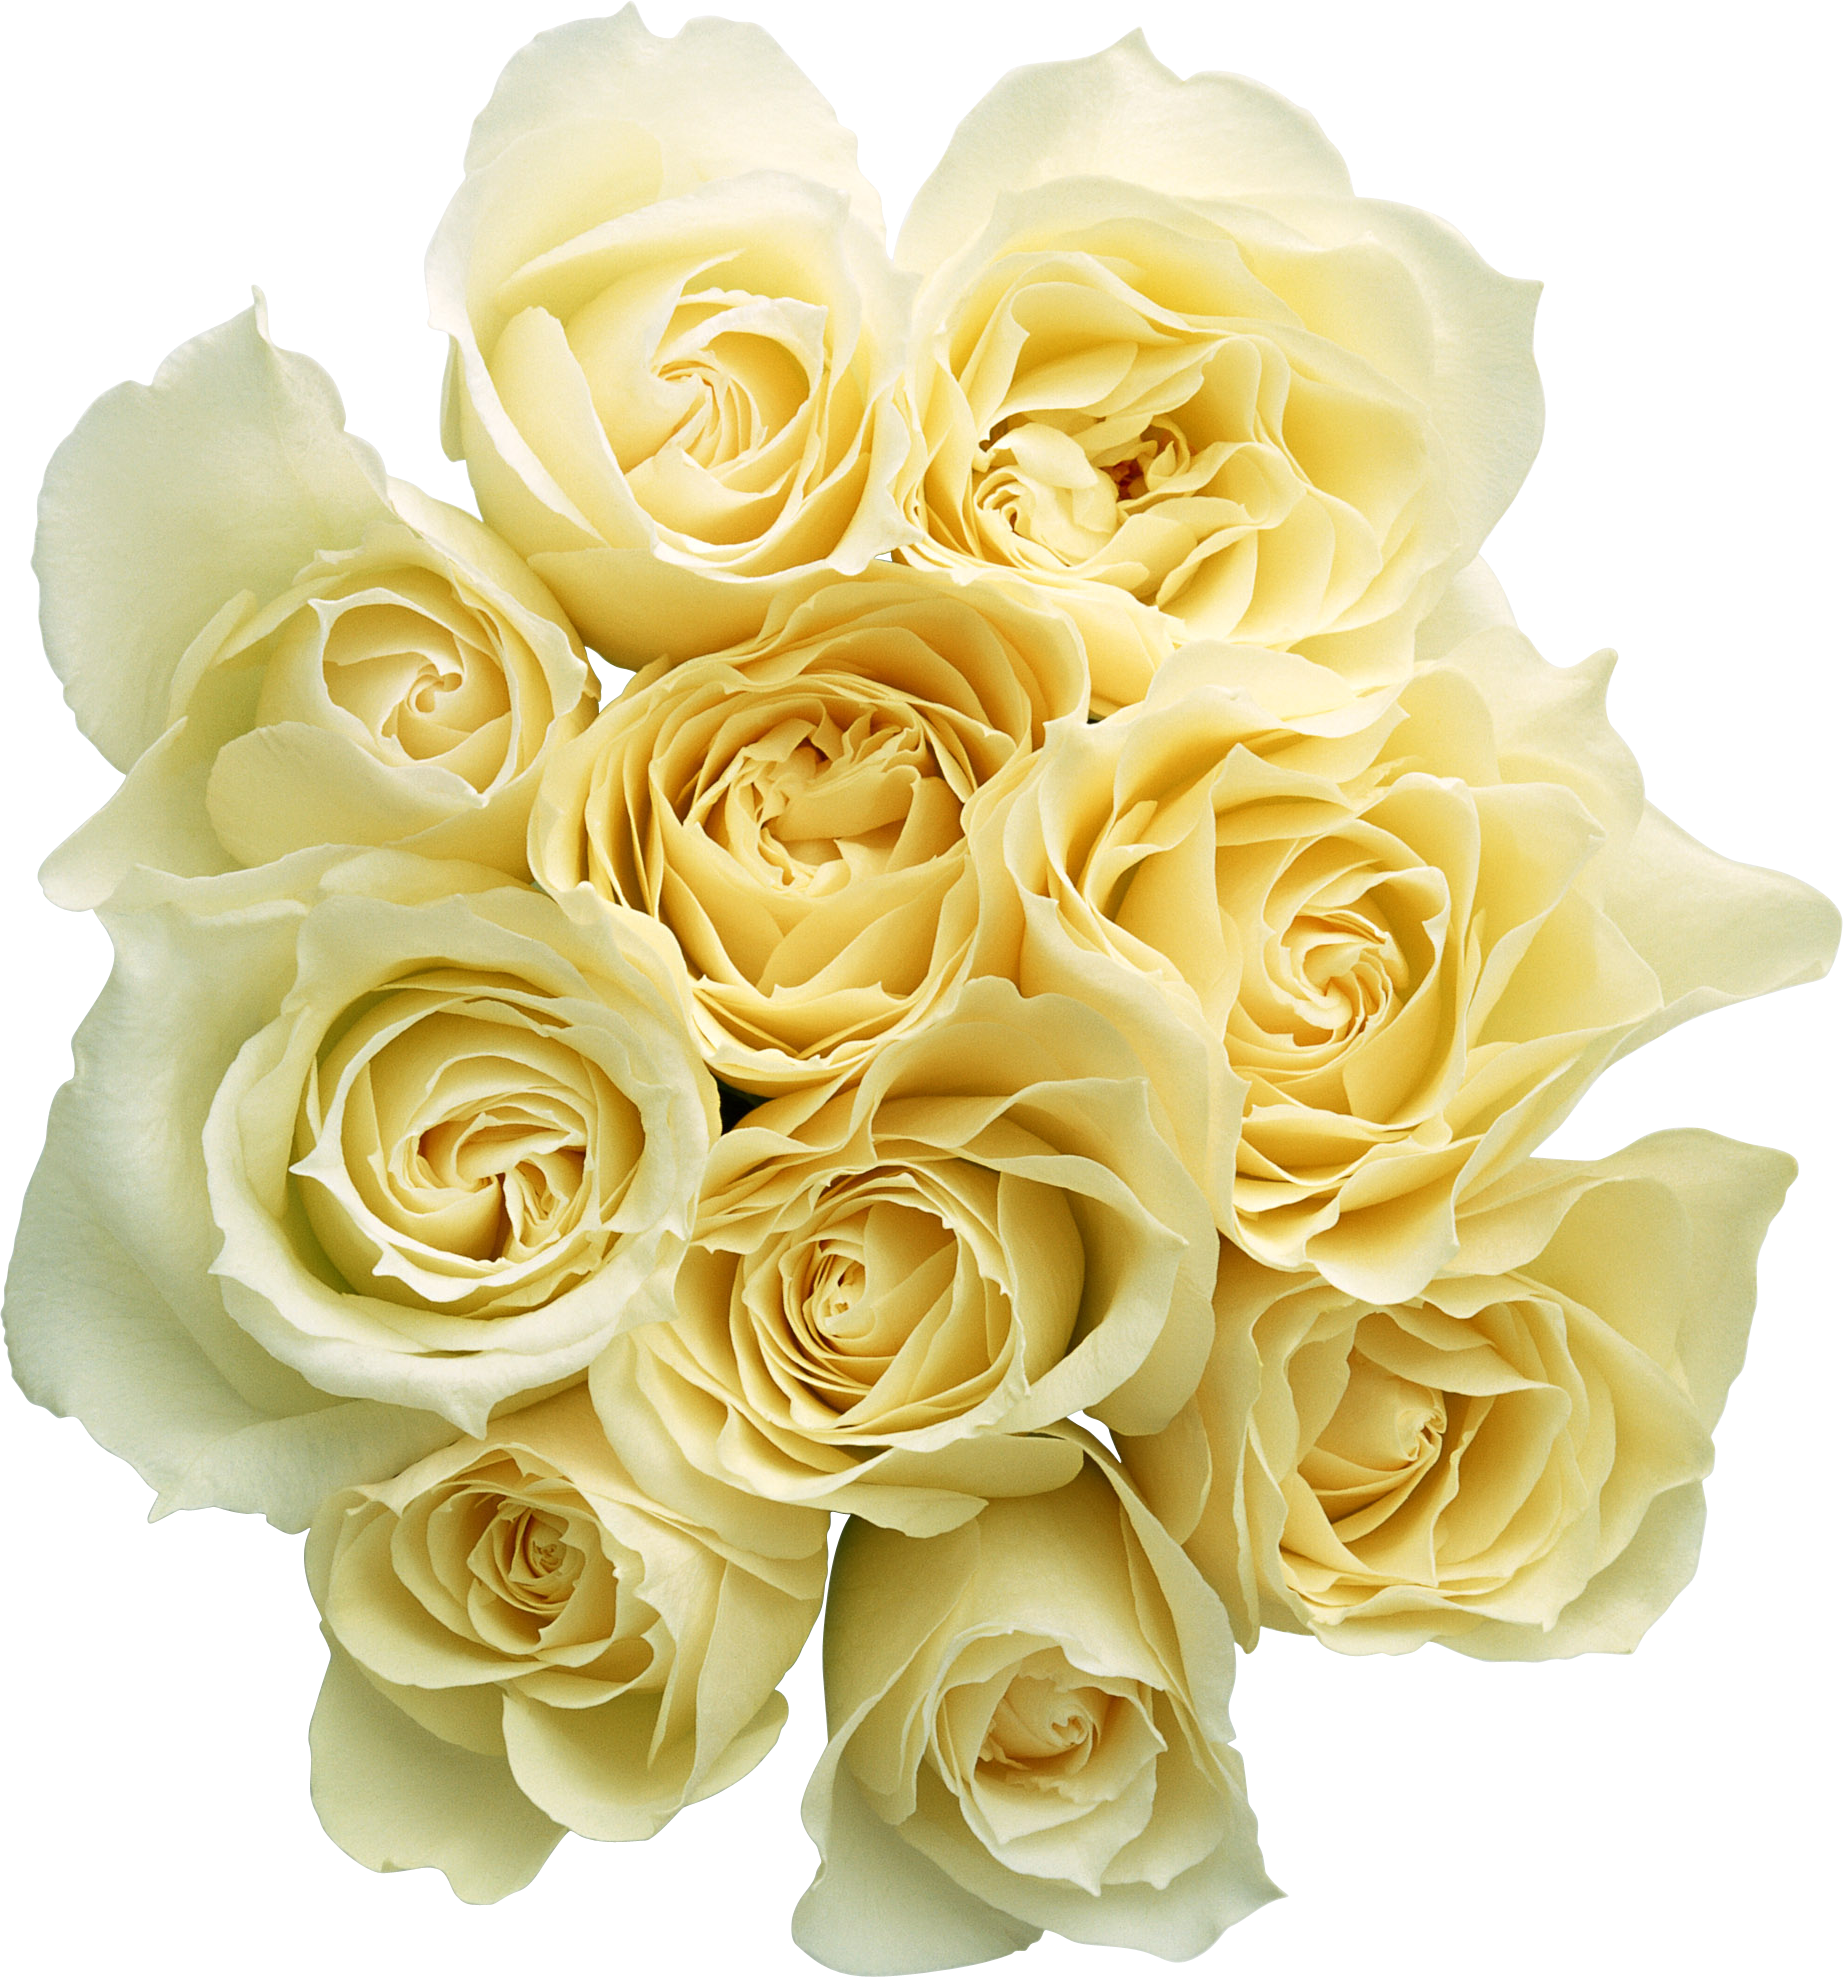 Flowers white png. Roses images free download